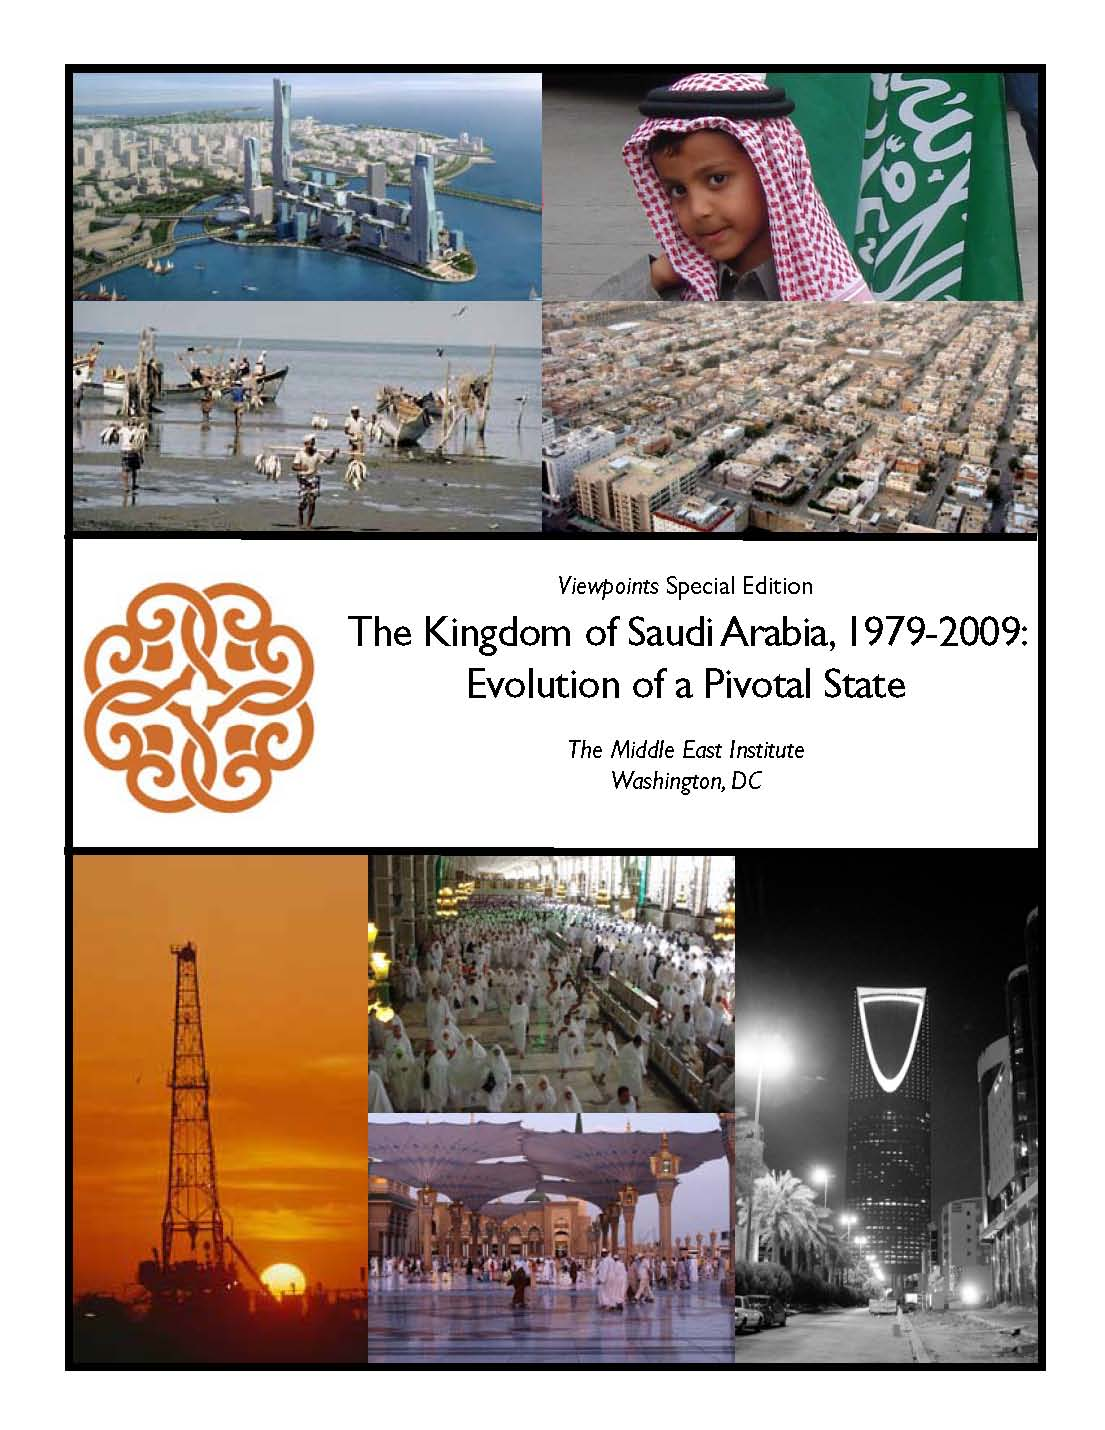 Introduction to The Kingdom of Saudi Arabia, 1979-2009: Evolution of a Pivotal State